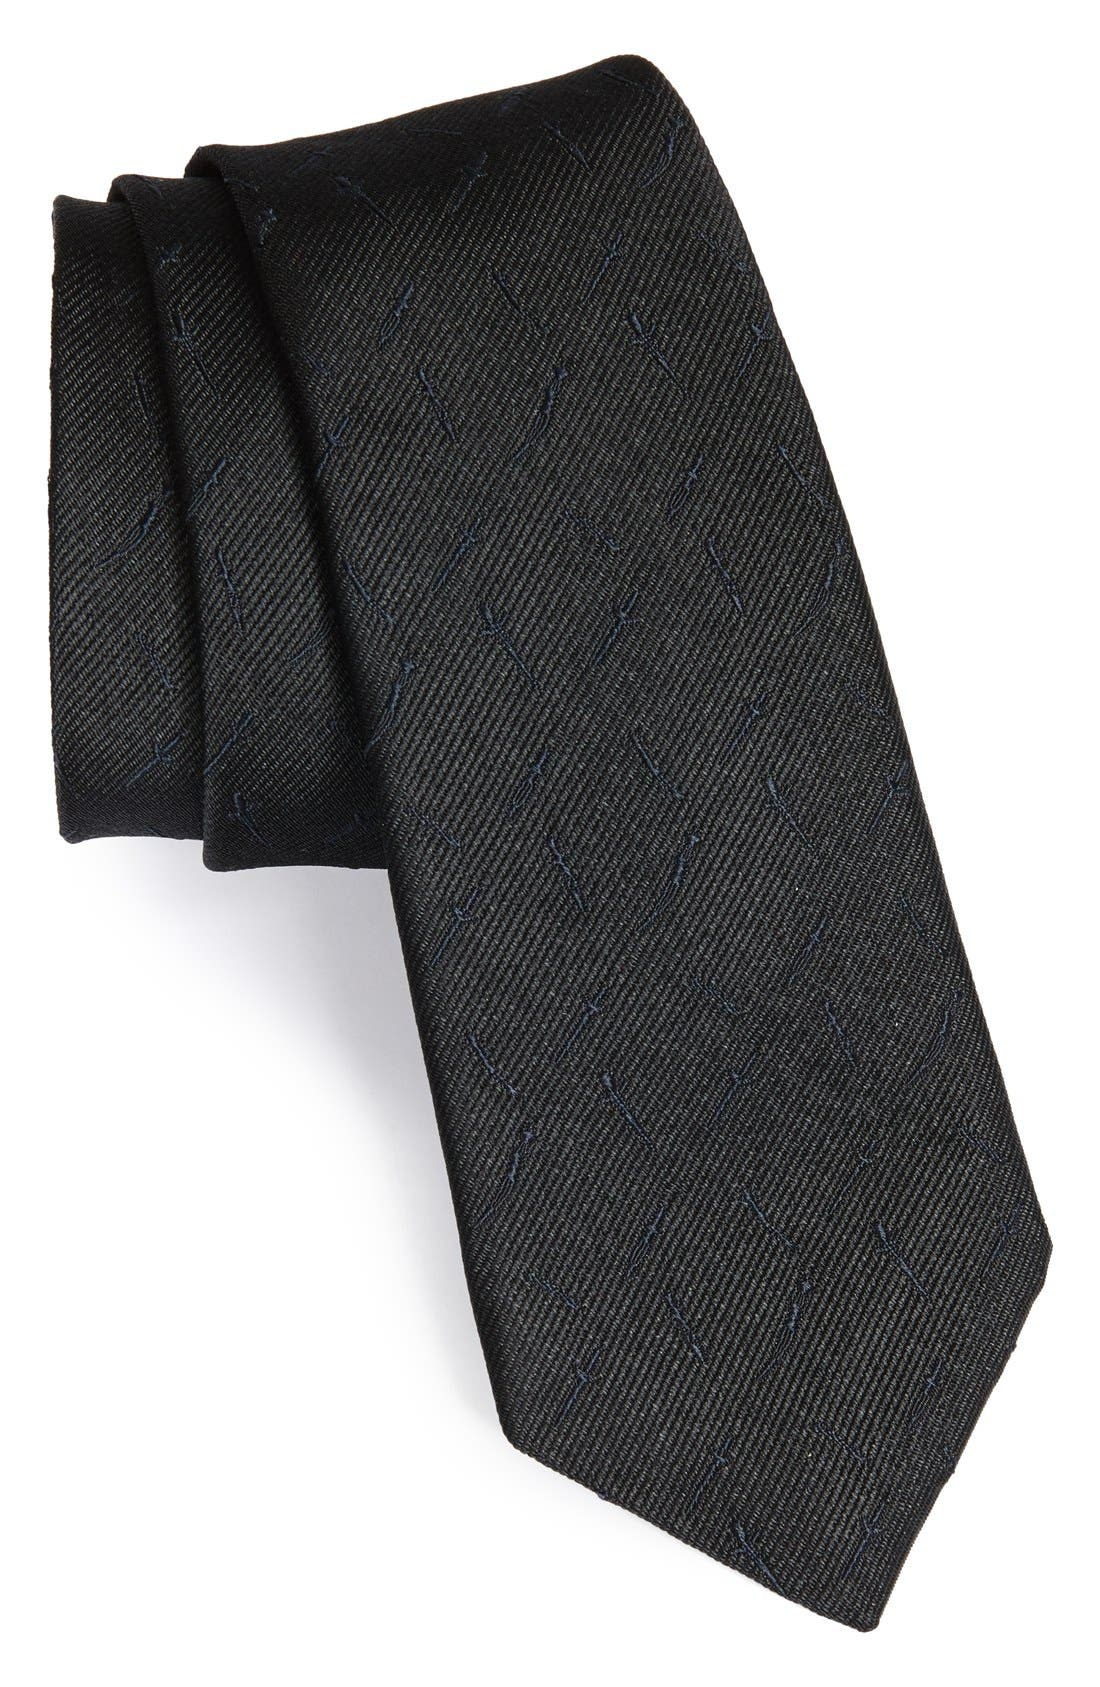 Alternate Image 1 Selected - rag & bone 'All Over Dagger' Woven Silk Tie